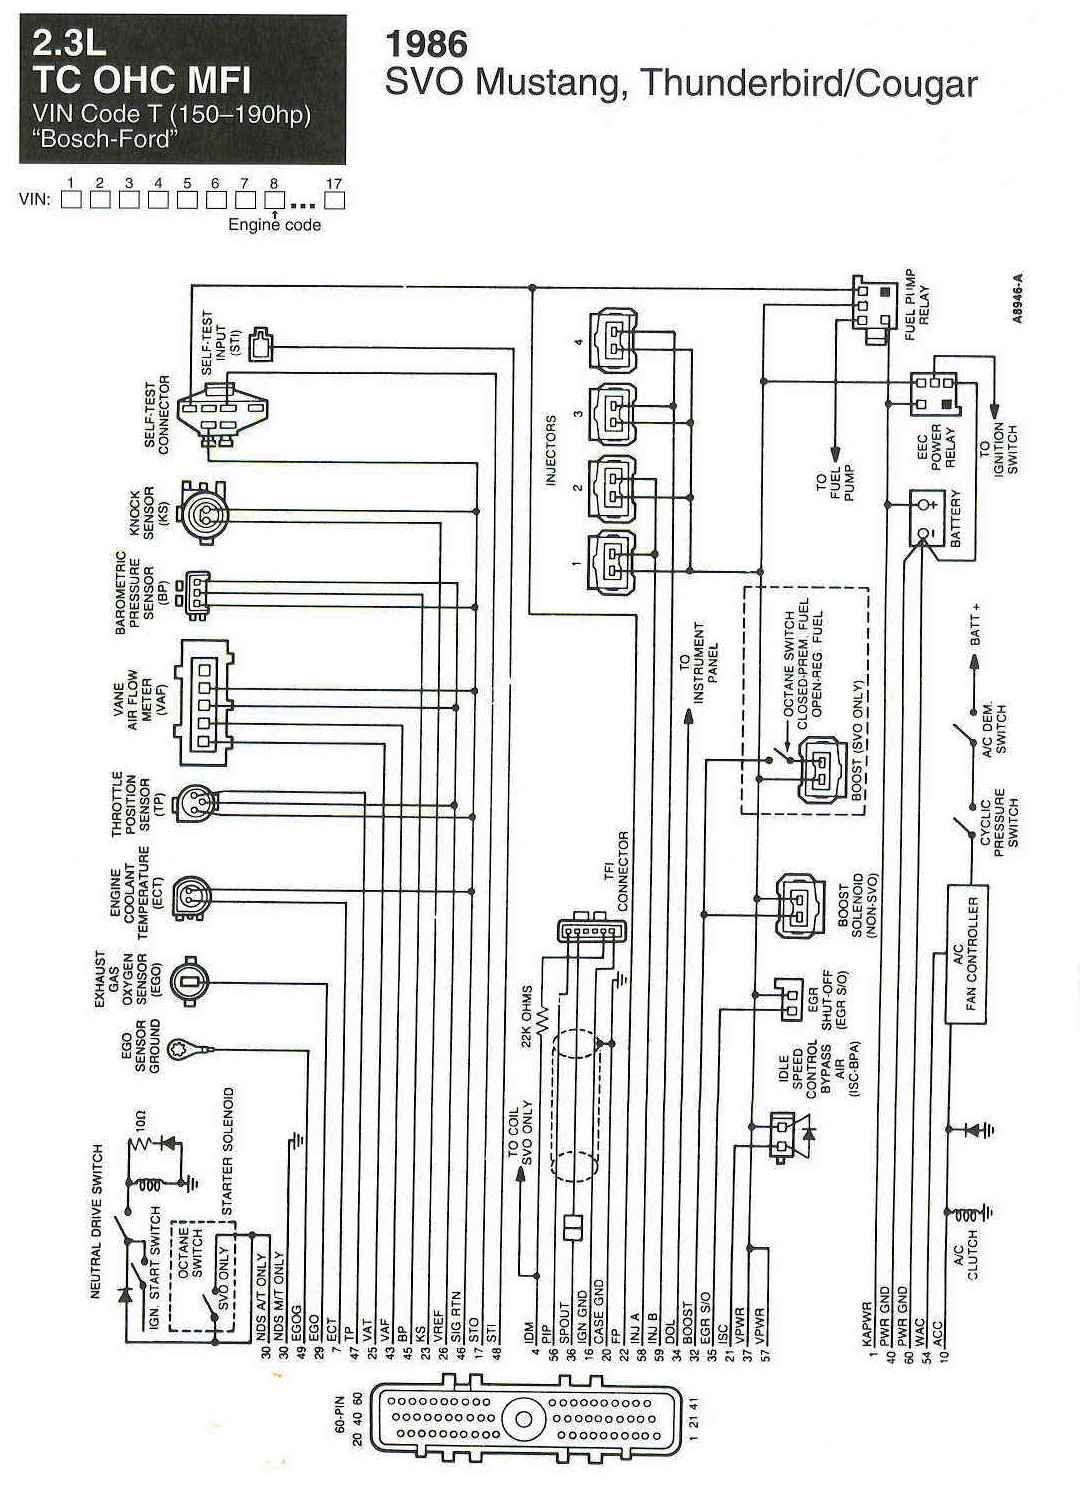 Wiring Diagram For 1984 Ford Mustang Starting Know About Seat Switch Bmw 2008 528i Diagrams Svo Forum